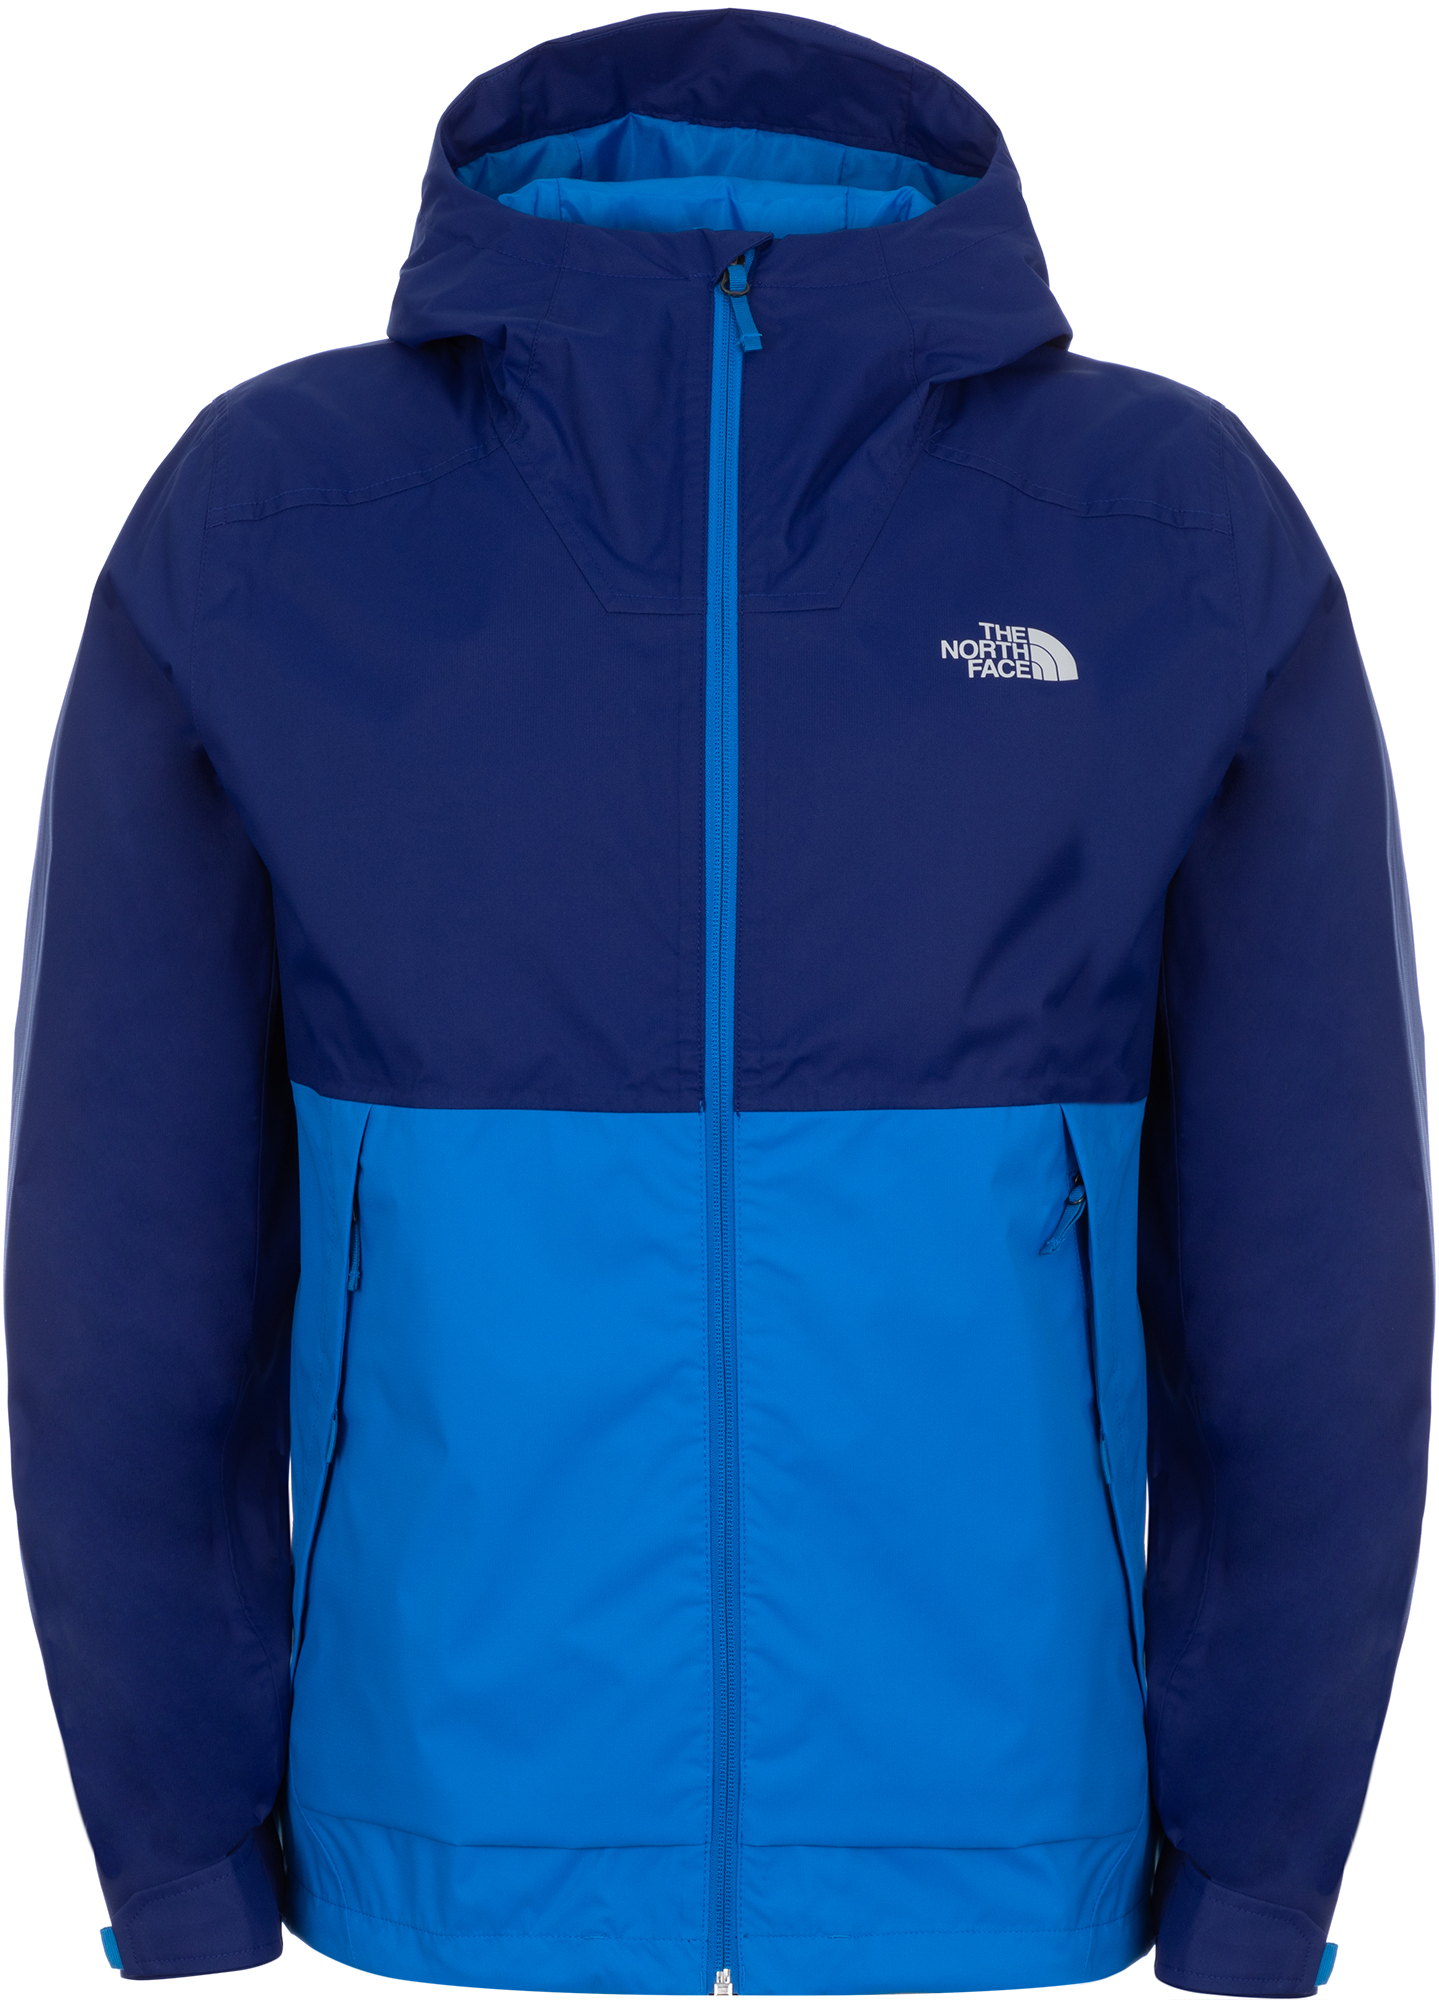 The North Face Ветровка мужская The North Face Millerton, размер 50